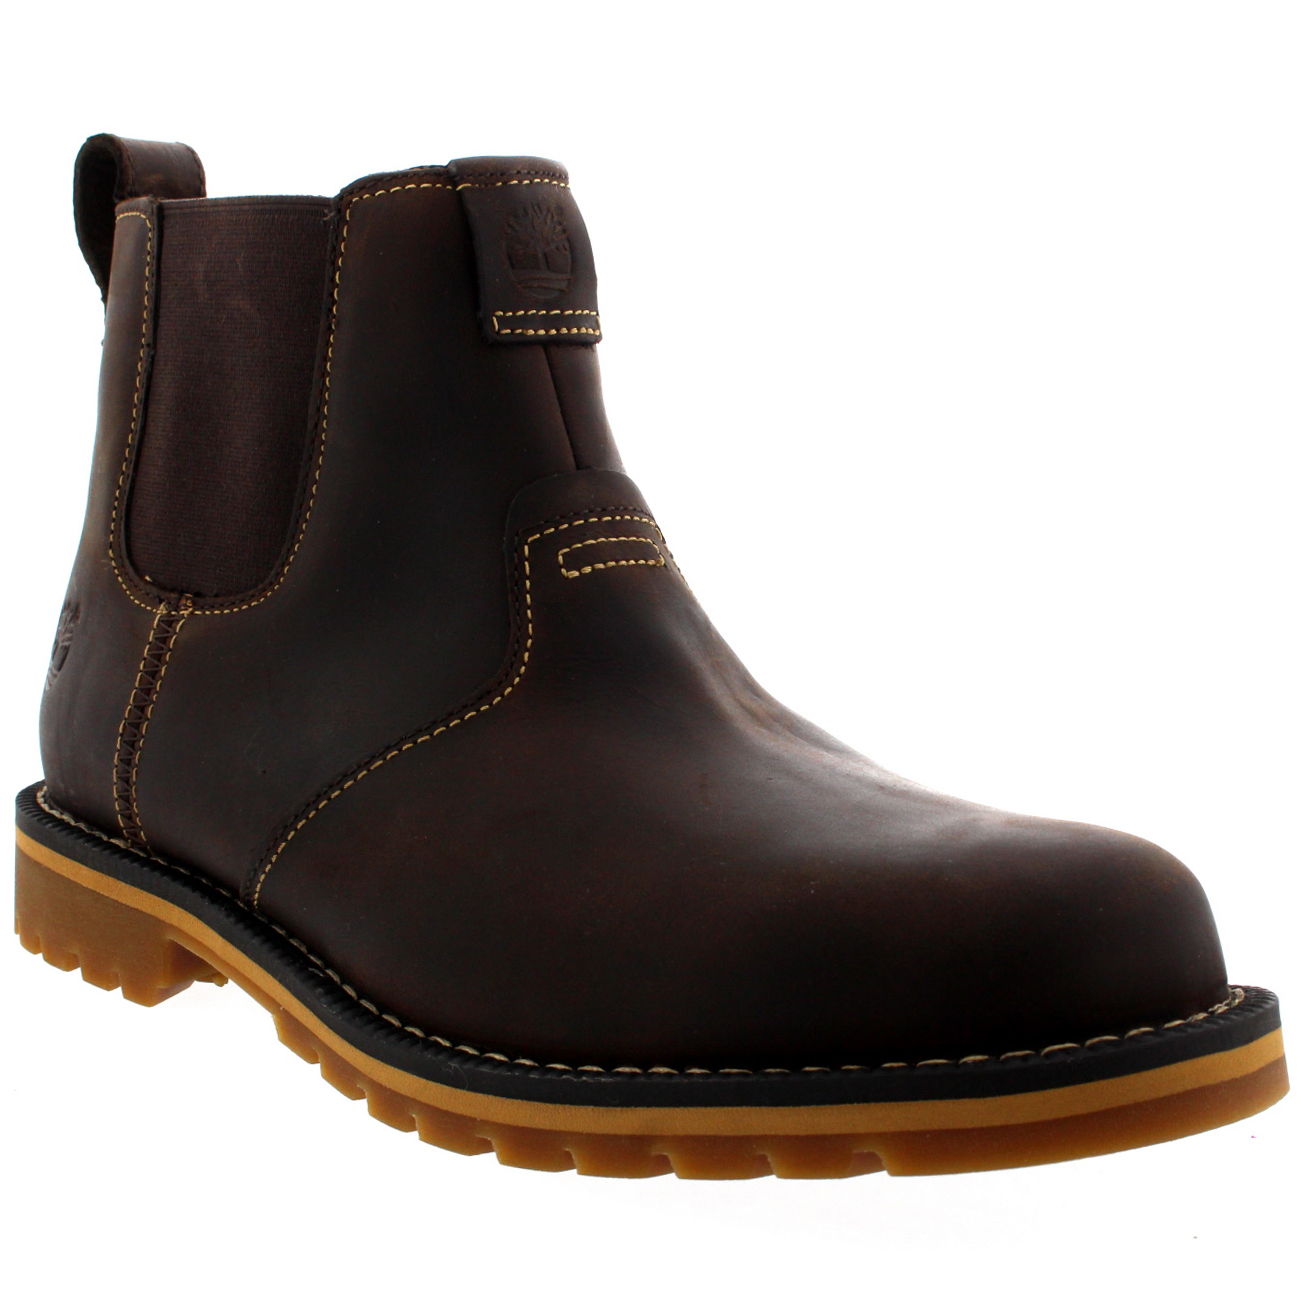 Timberland Grantly Chelsea Leather